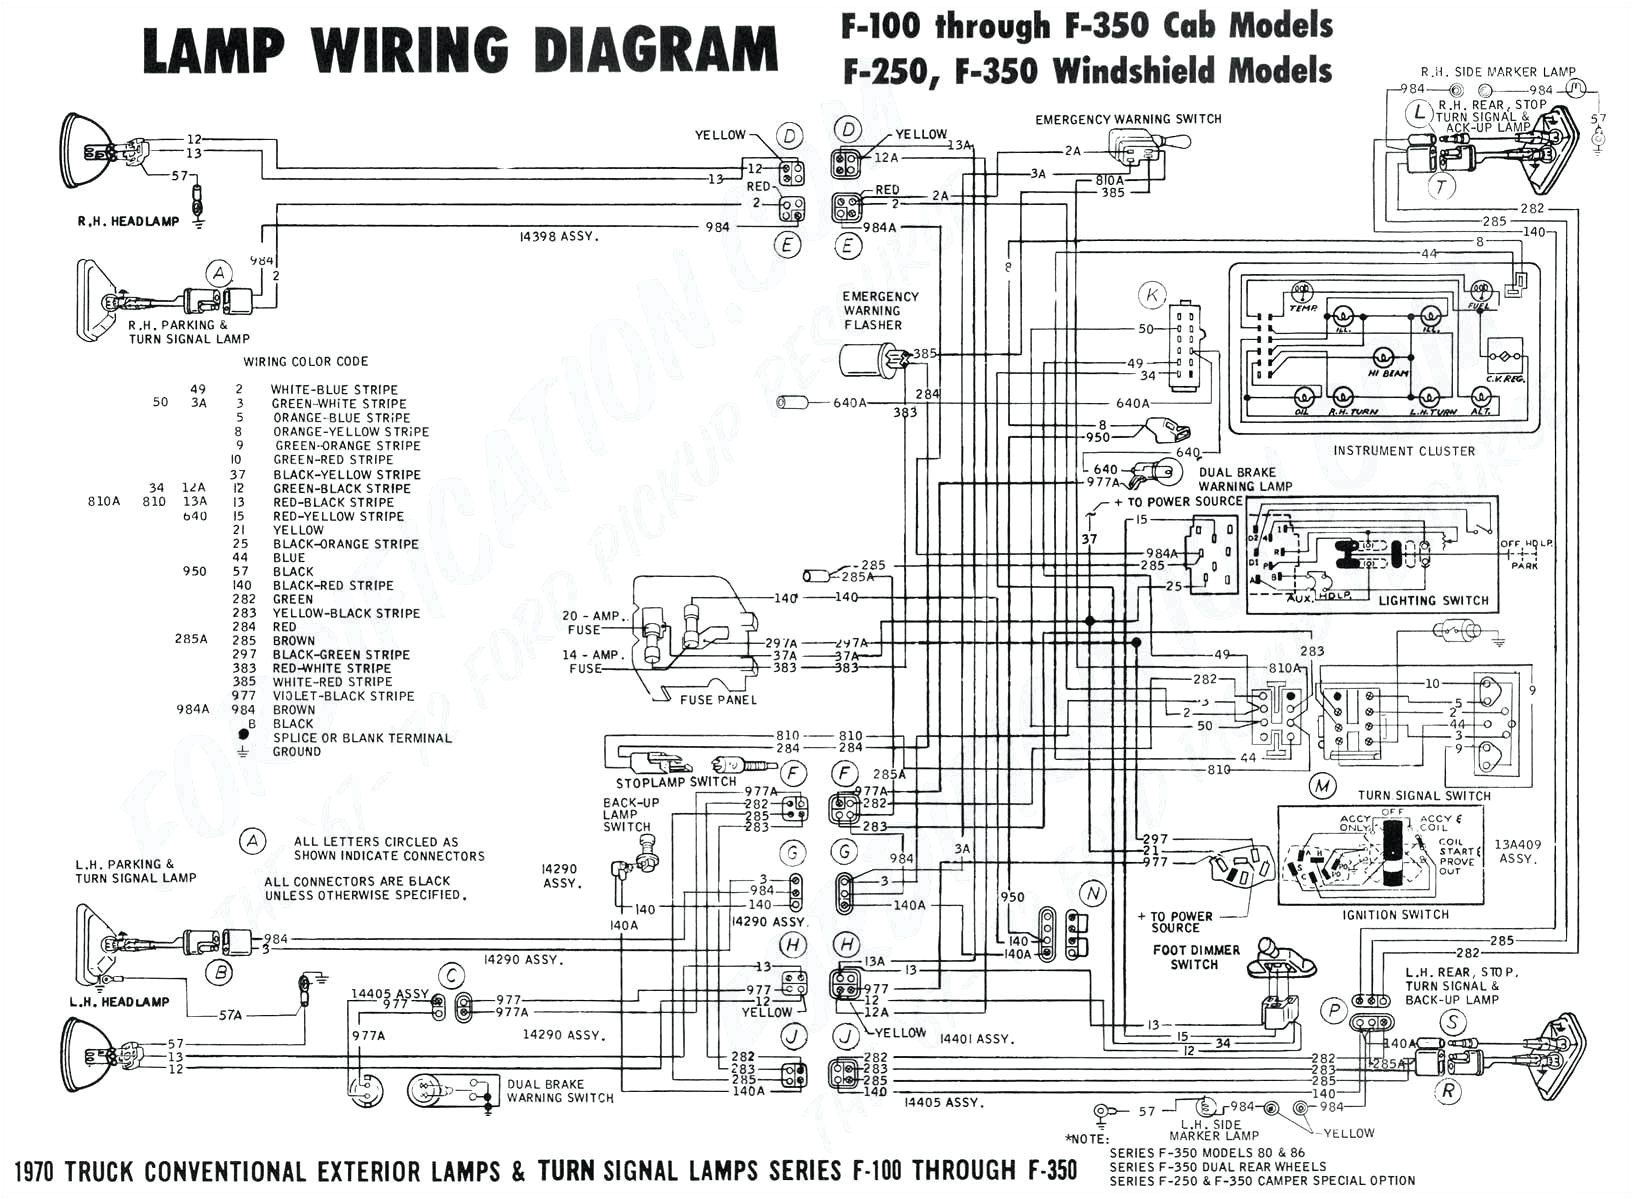 electrical panel wiring diagram 250 wiring diagram paper headlight relay diagram by mikeholy